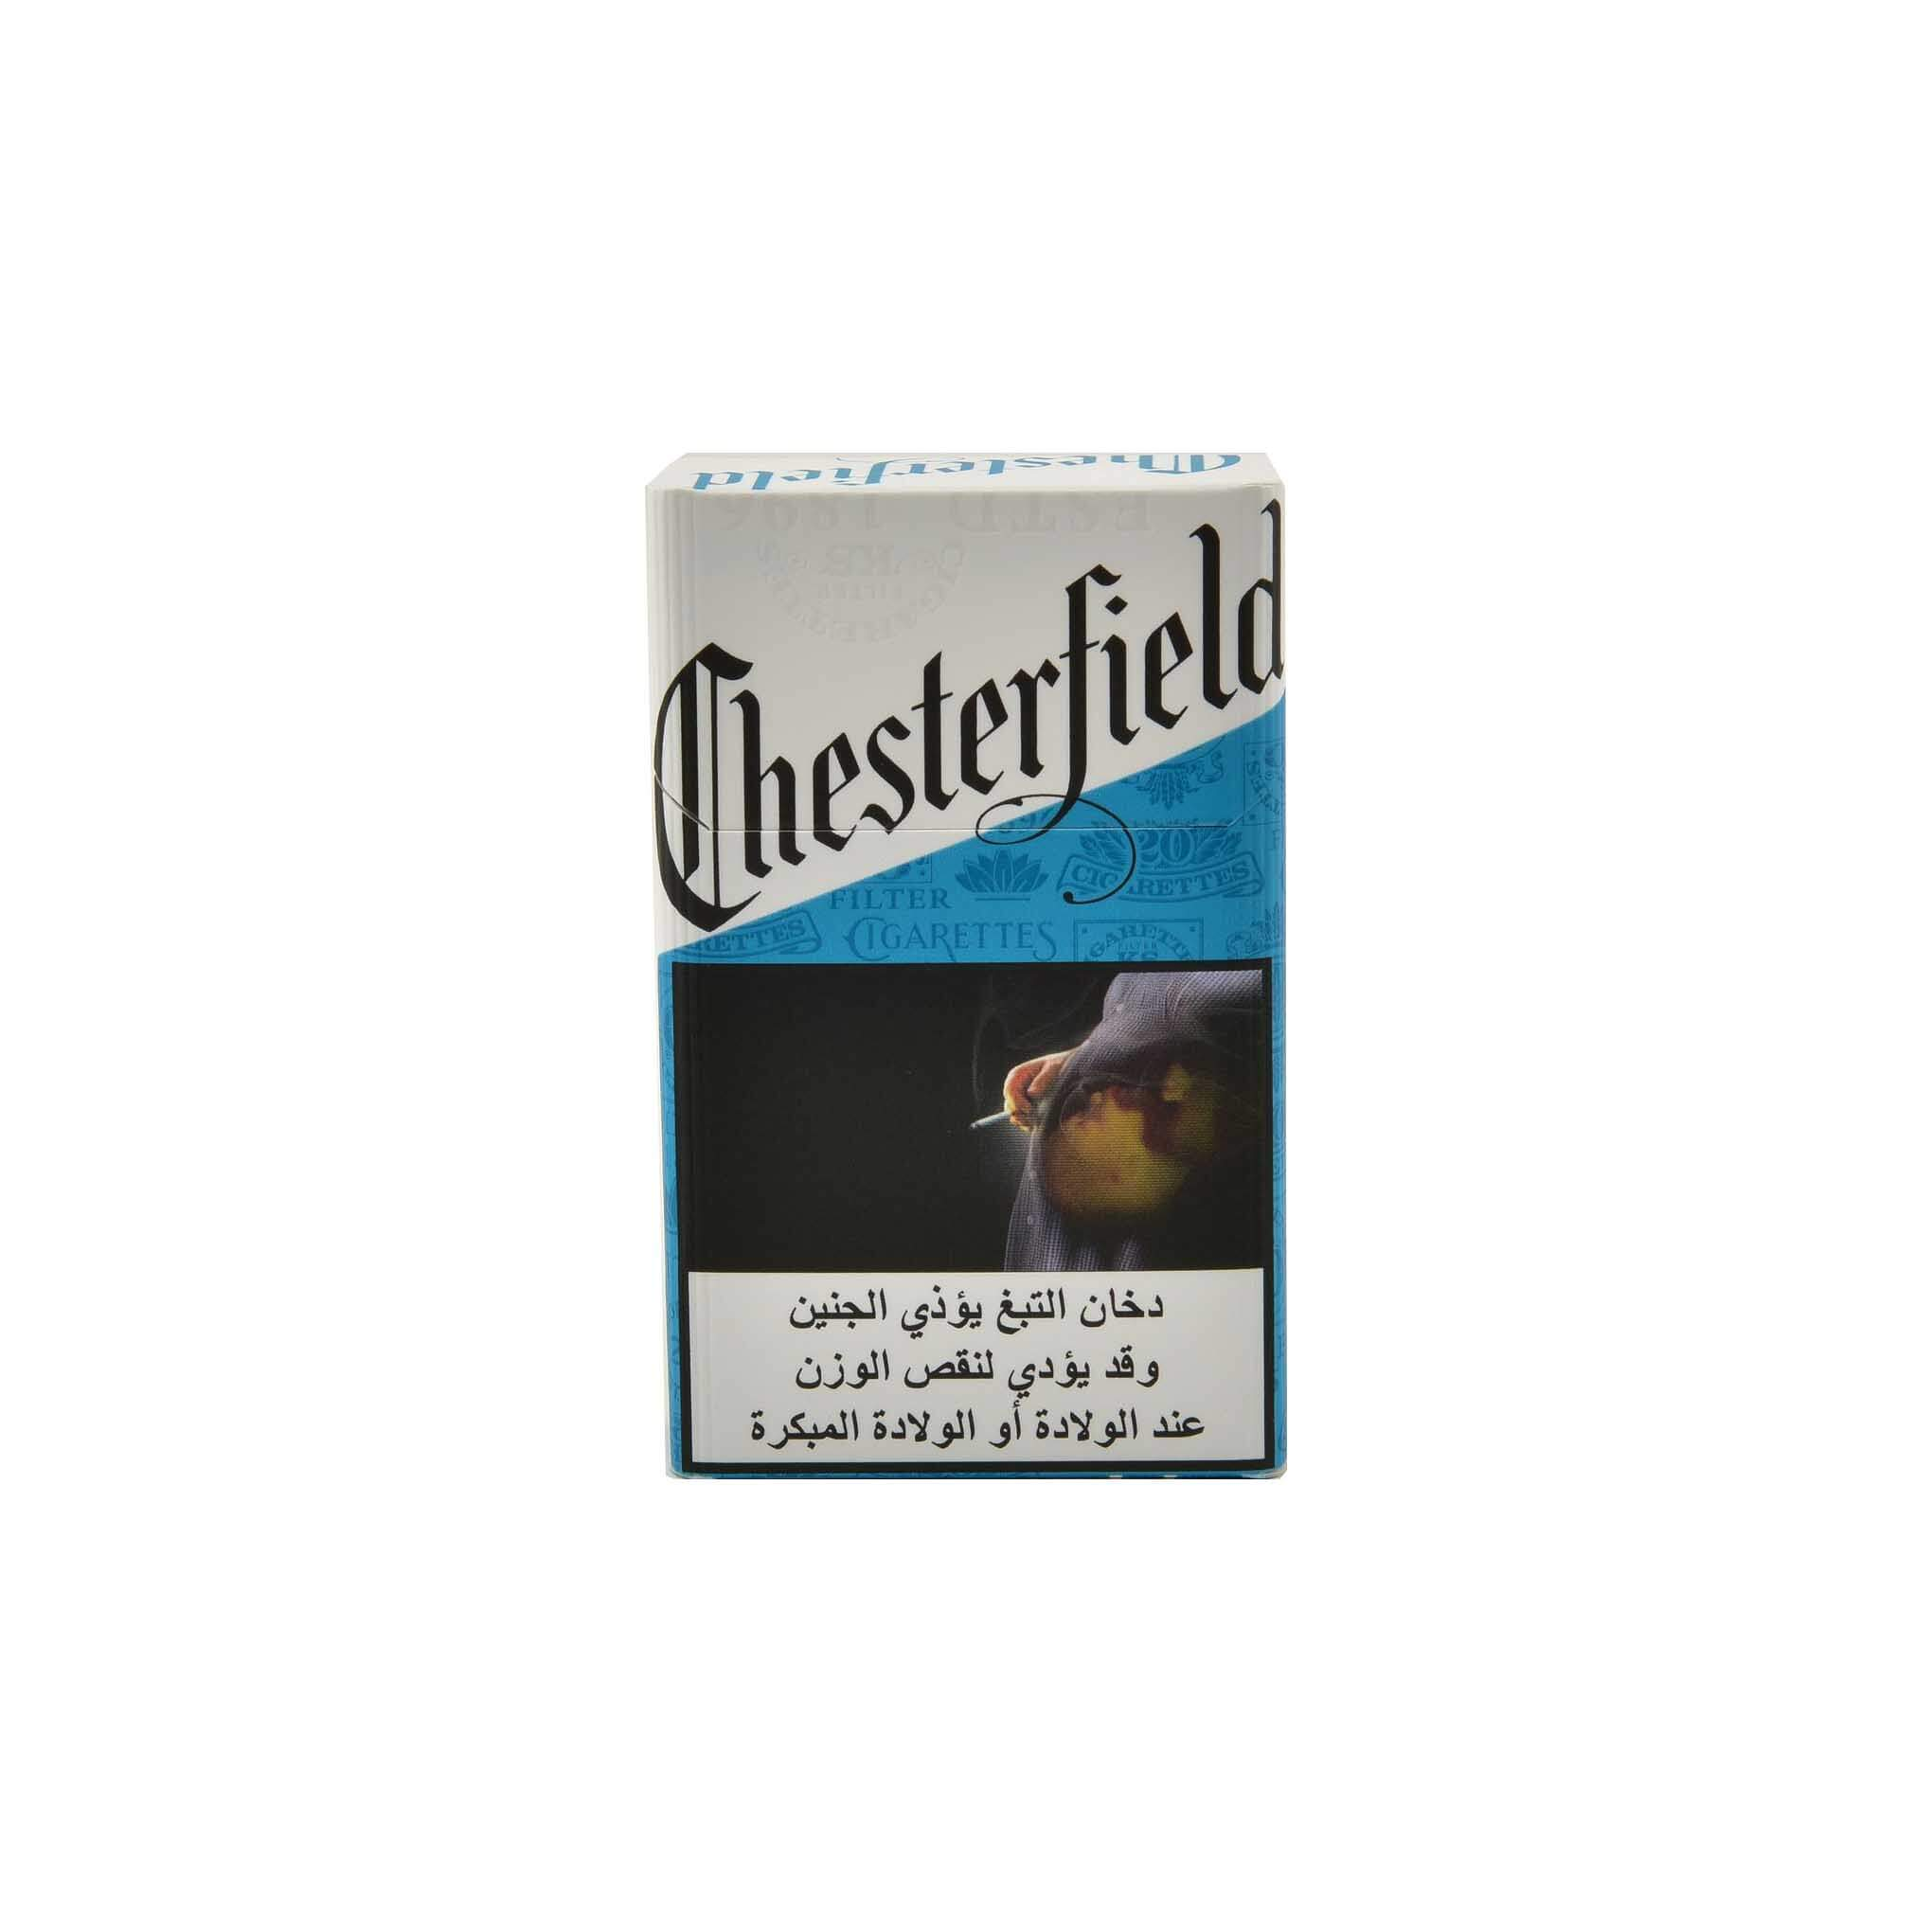 Chesterfield Blue Cigarettes, 1 Pack